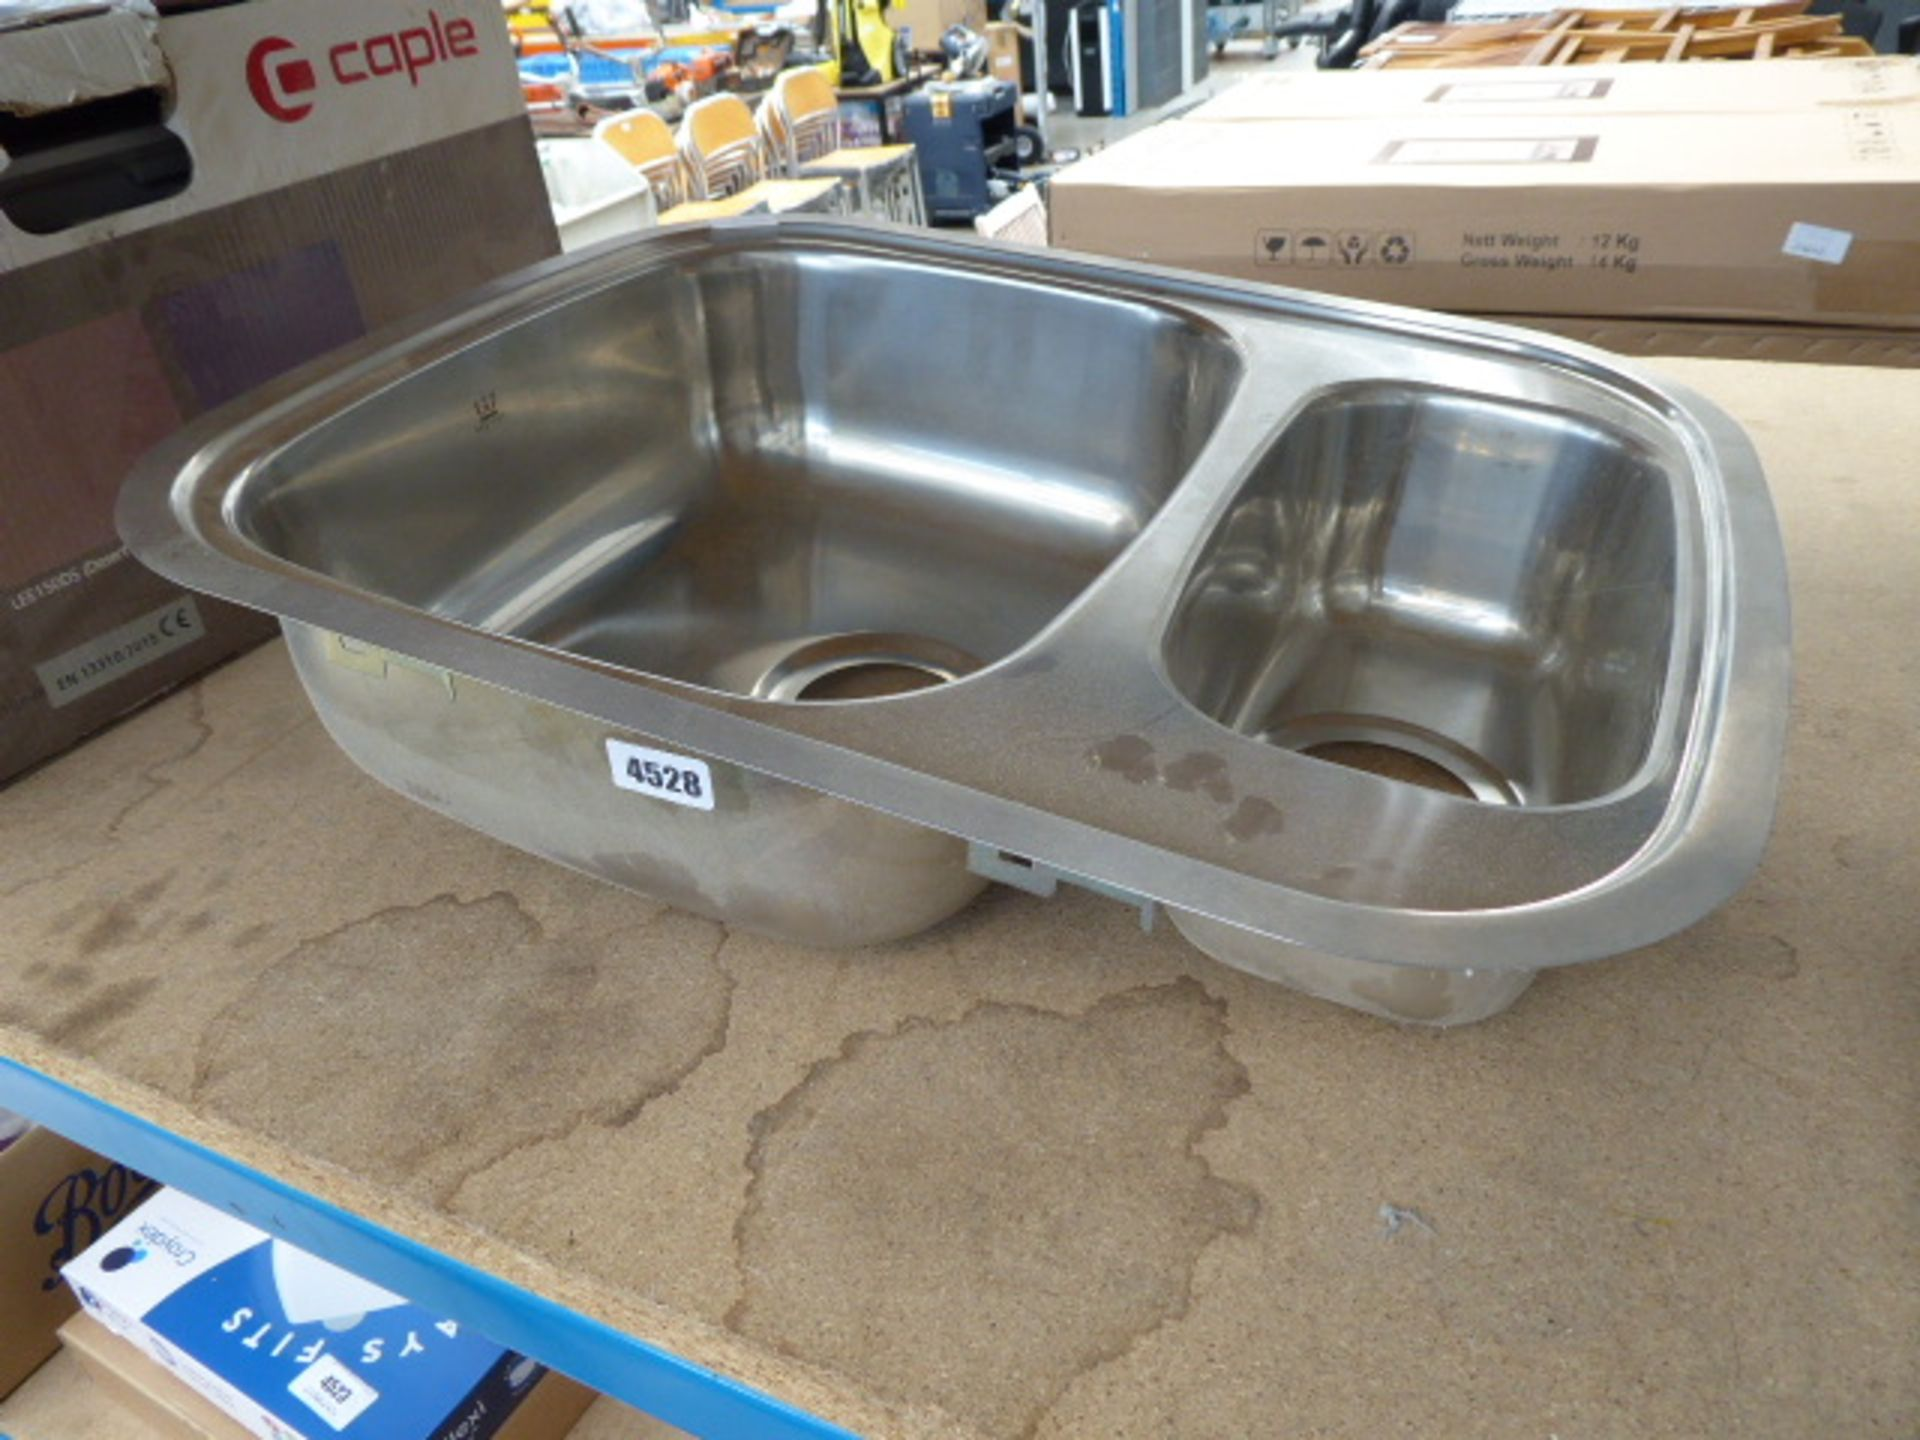 Lot 4528 - 1.5 bowl small stainless steel sink